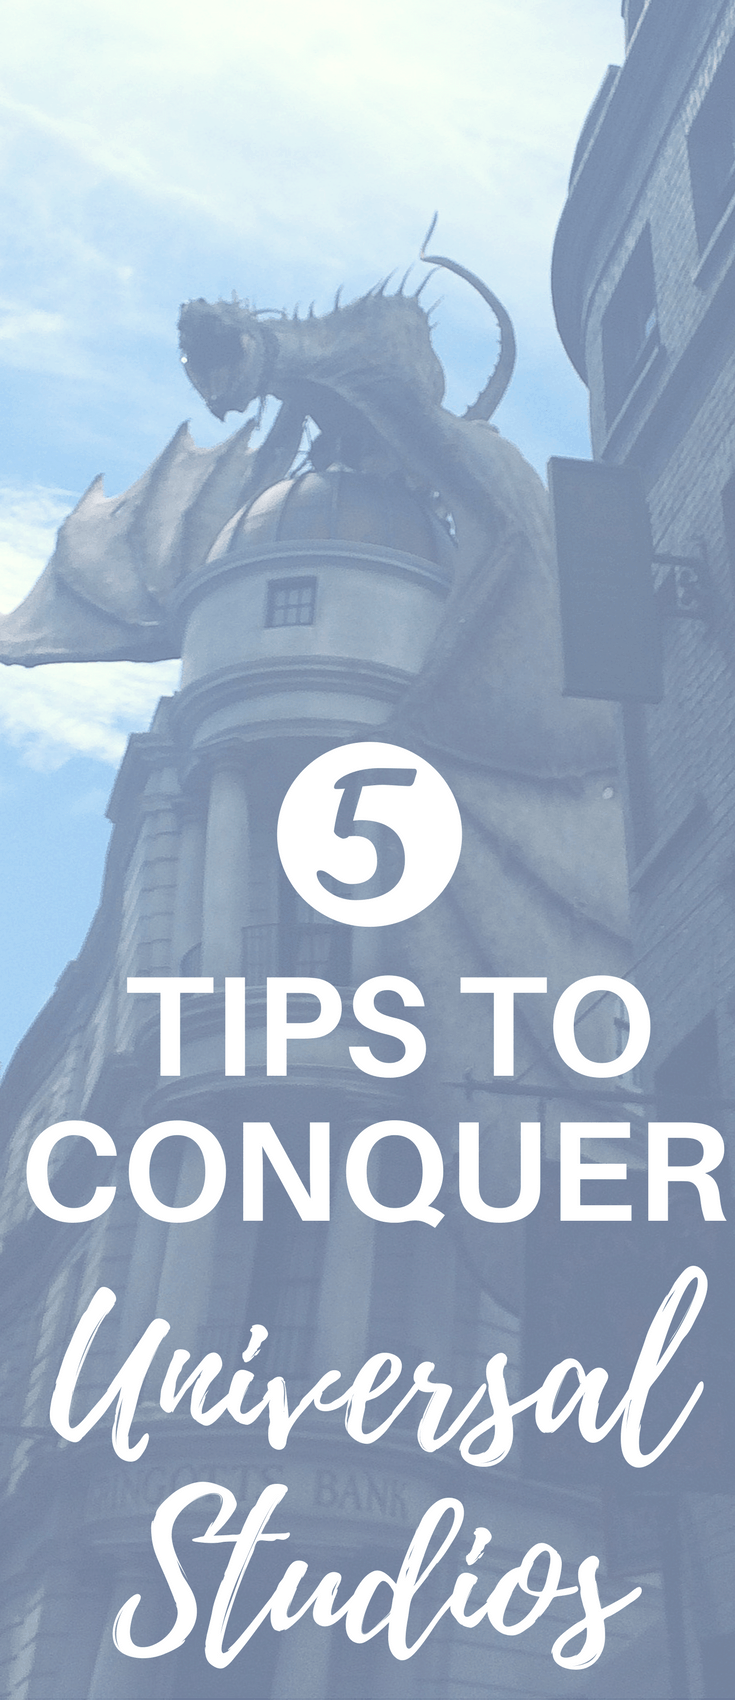 5 Tips to Conquer Universal Studios on your next visit. This travel guides gives you the 5 tips to make your day at Universal Studios the best vacation you've had yet.